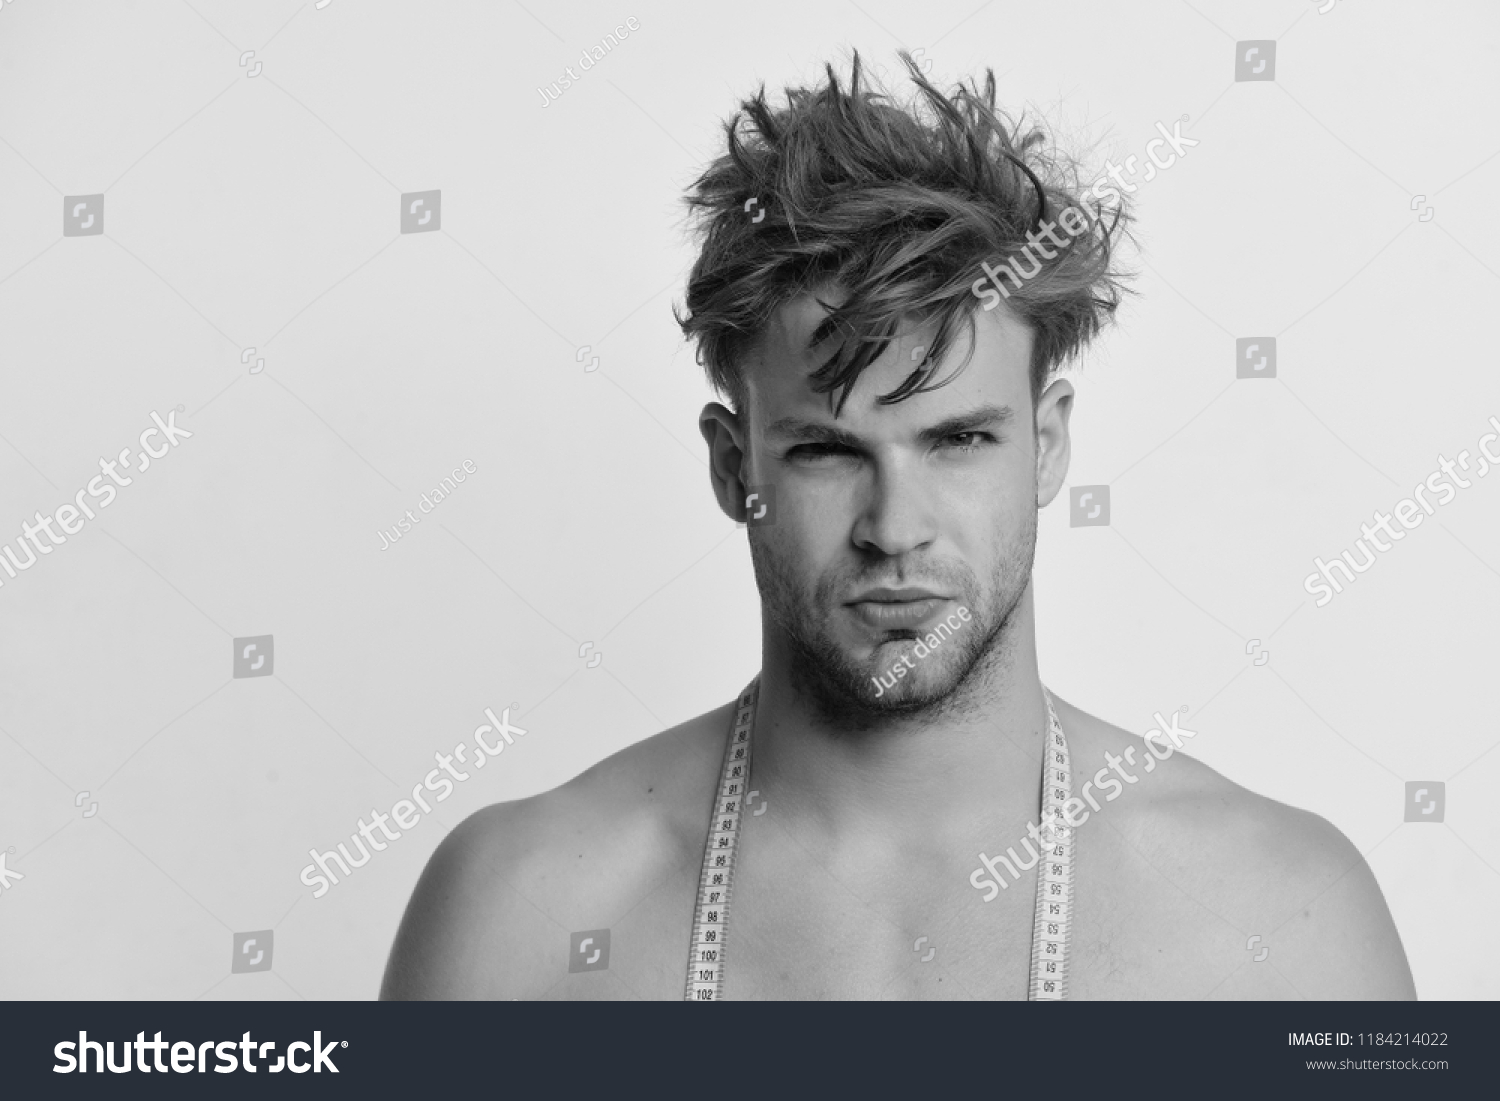 Athlete Messy Hair Measures Nude Body Stock Photo Edit Now